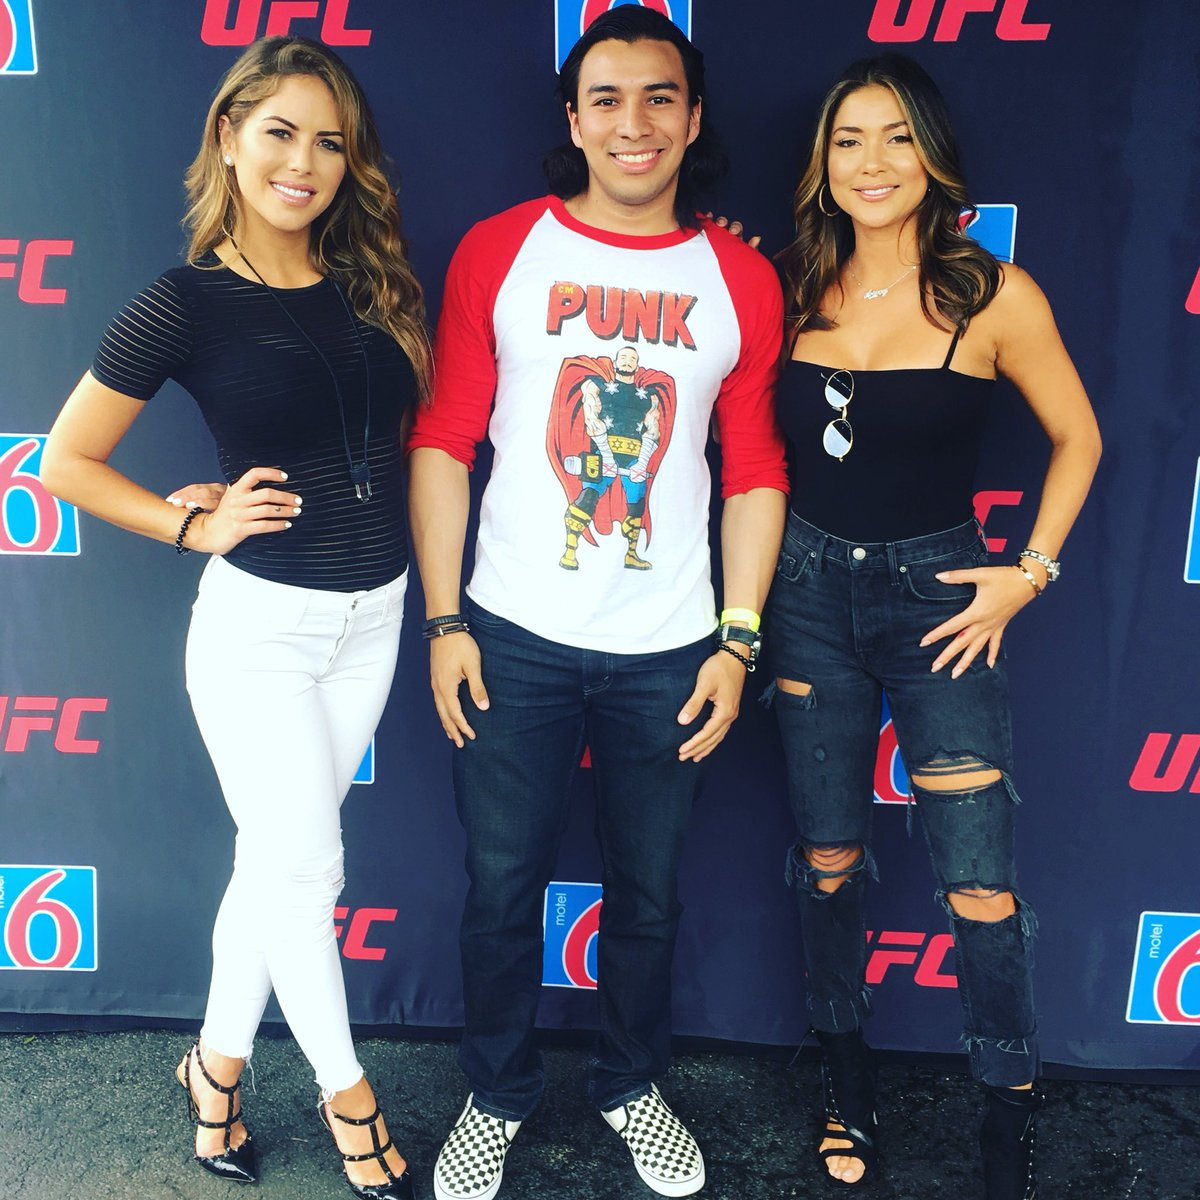 RT @titomedrano90: So I met this beautiful ladies, for the first time @BrittneyPalmer & @AriannyCeleste #UFC225 https://t.co/bksKlx6RC8